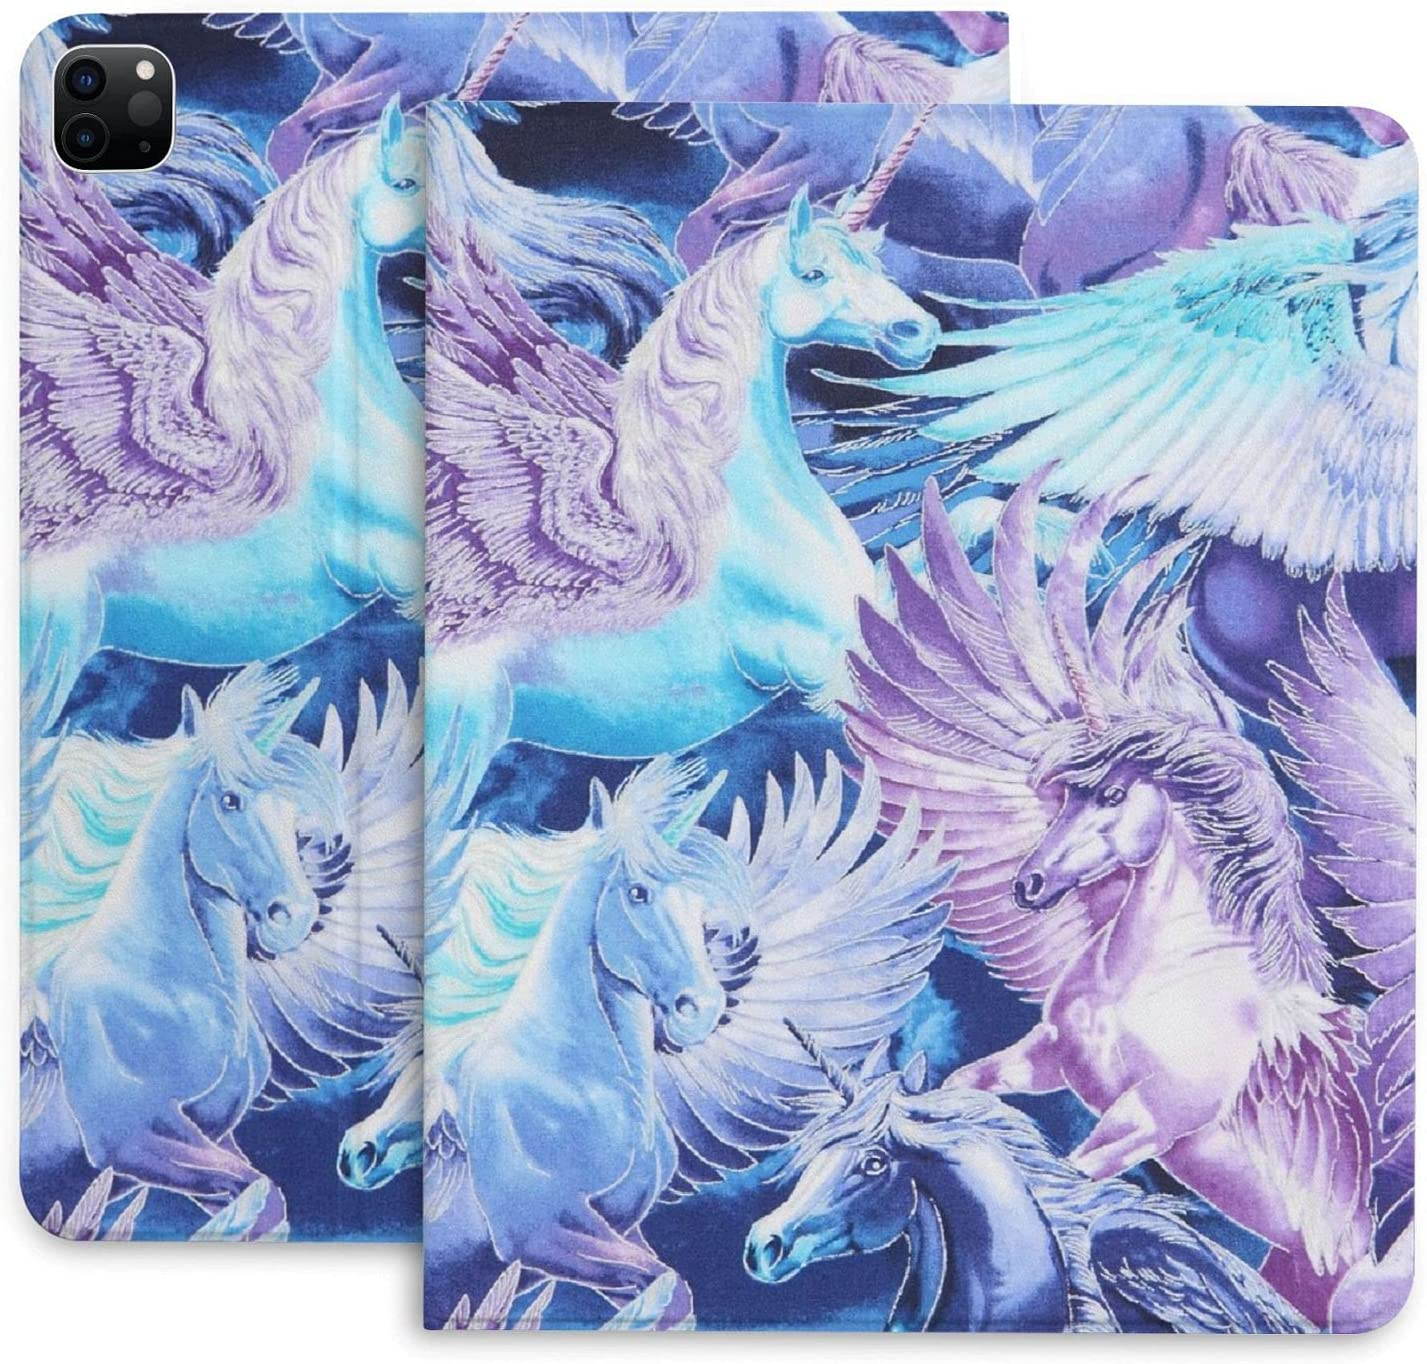 Unicorn Finally popular brand Case for Ipad Pro 12.9 4th 2020 Tablet Sale Special Price Gen Viewi in